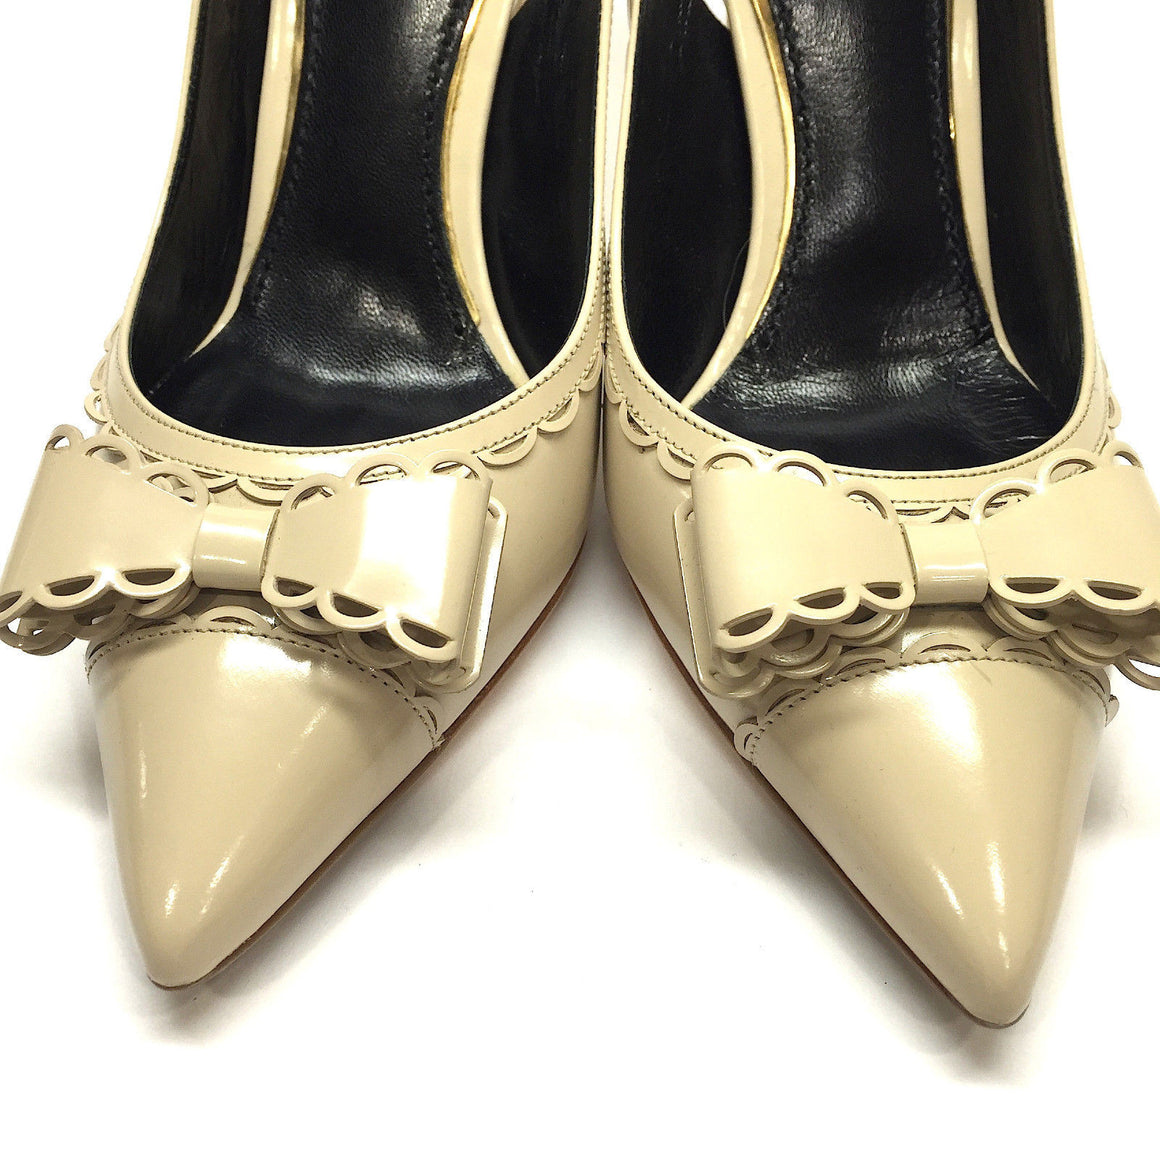 bisbiz.com DOLCE & GABBANA  Beige Patent Leather Pointy-Toe Bow  Heel Slingbacks  Size: 38 / 7.5 - Bis Luxury Resale